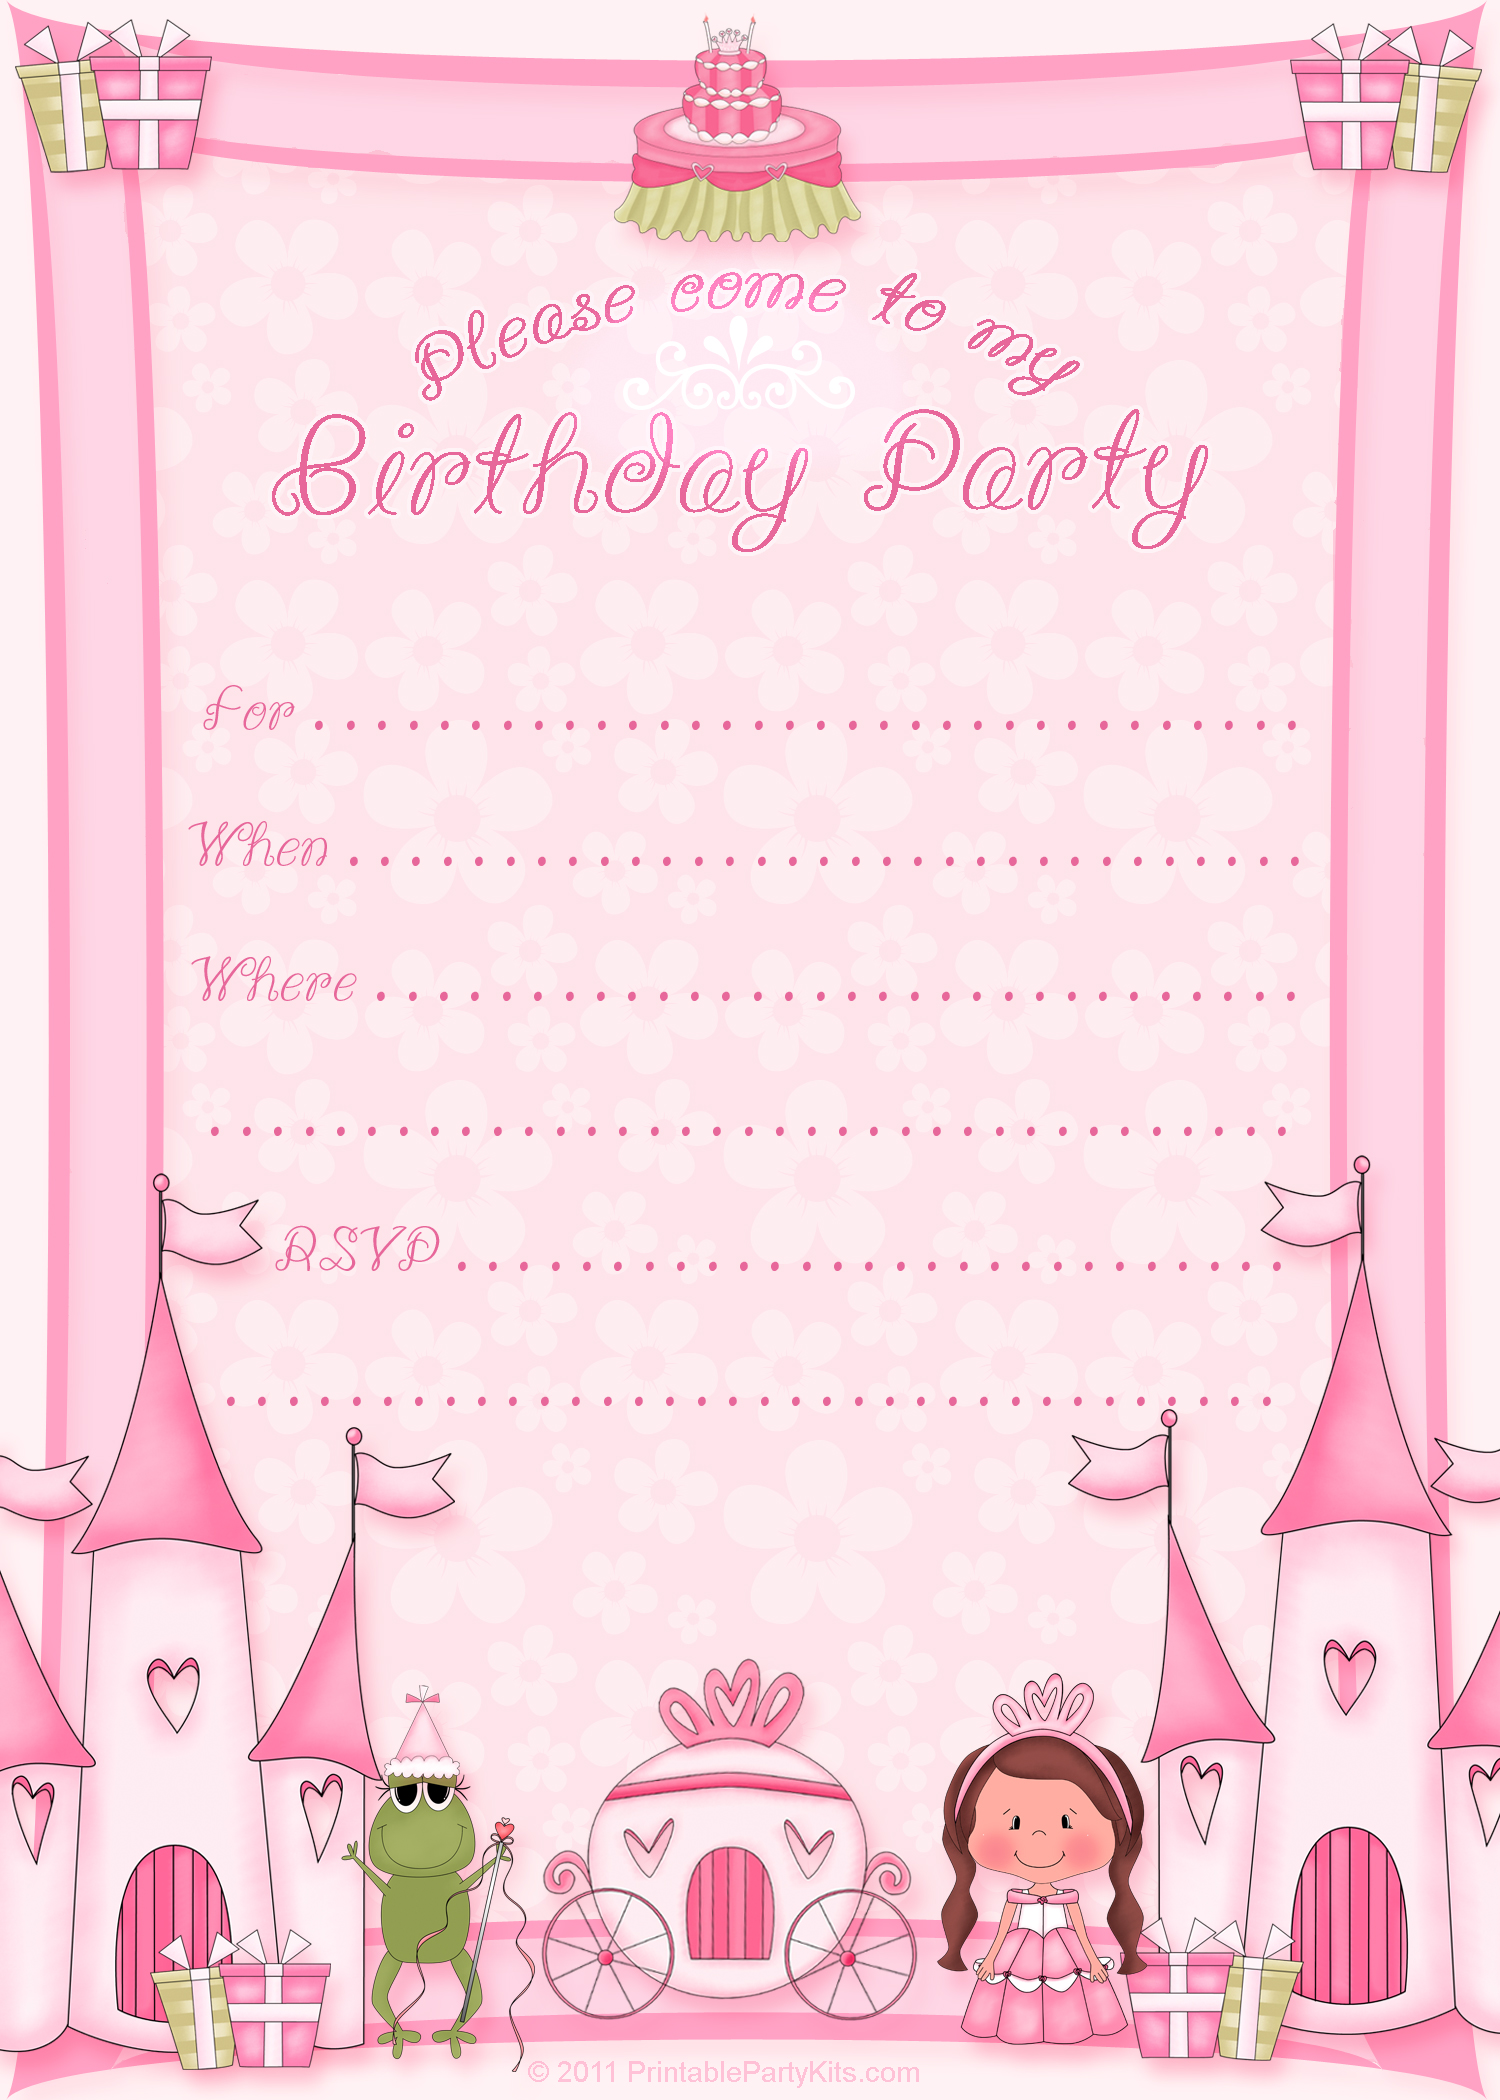 Girl birthday invitations templates free juvecenitdelacabrera girl birthday invitations templates free stopboris Choice Image